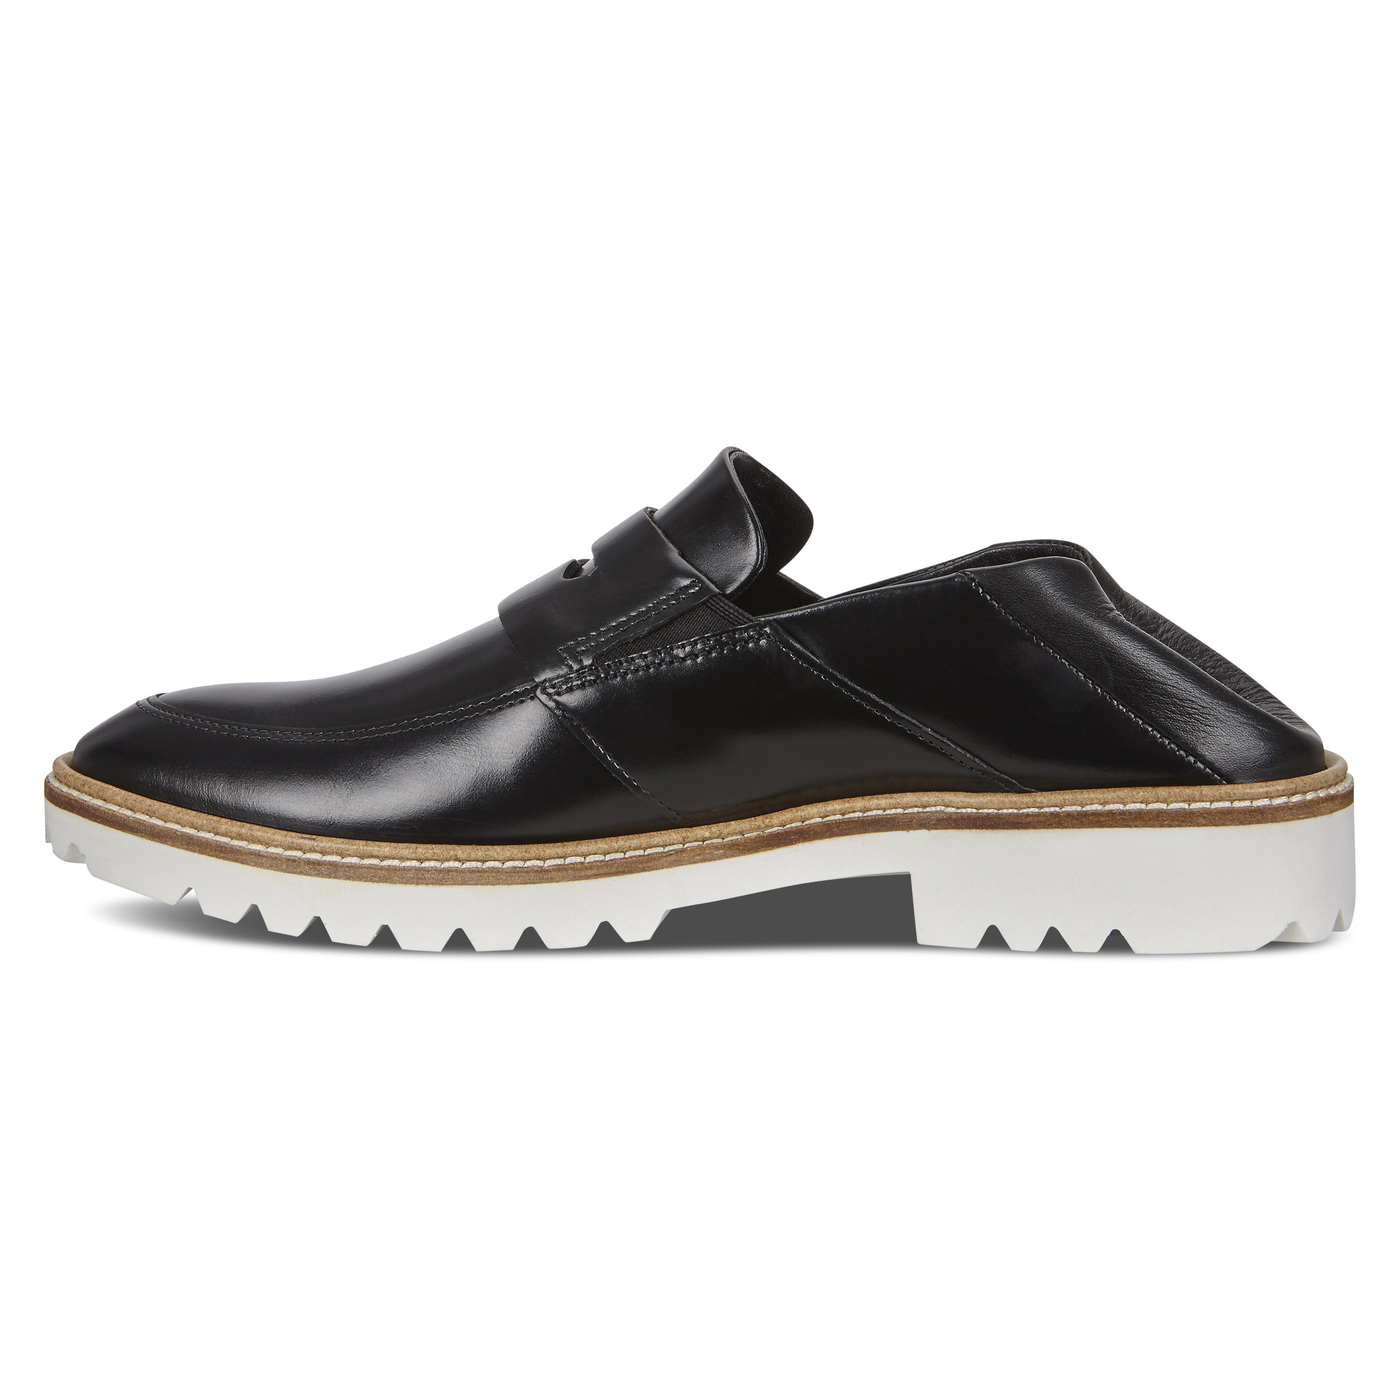 ECCO INCISE TAILORED Modern Slip-On